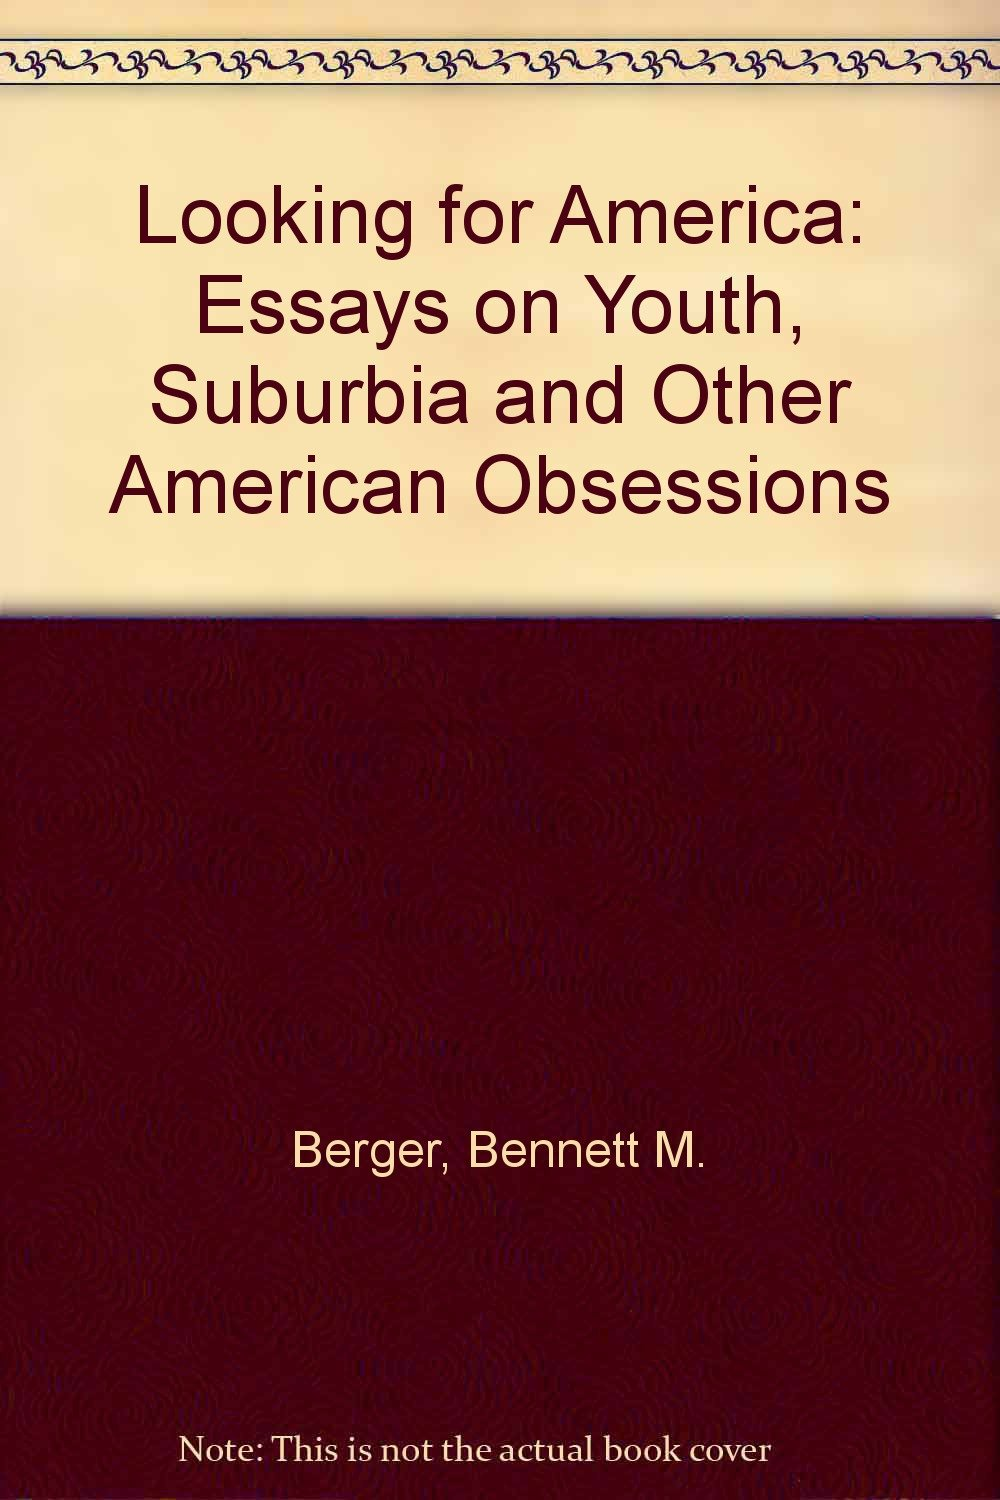 Business Essay Sample Looking For America Essays On Youth Suburbia And Other American  Obsessions Bennett M Berger  Amazoncom Books Essay Examples For High School also Narrative Essay Examples For High School Looking For America Essays On Youth Suburbia And Other American  Essay Term Paper